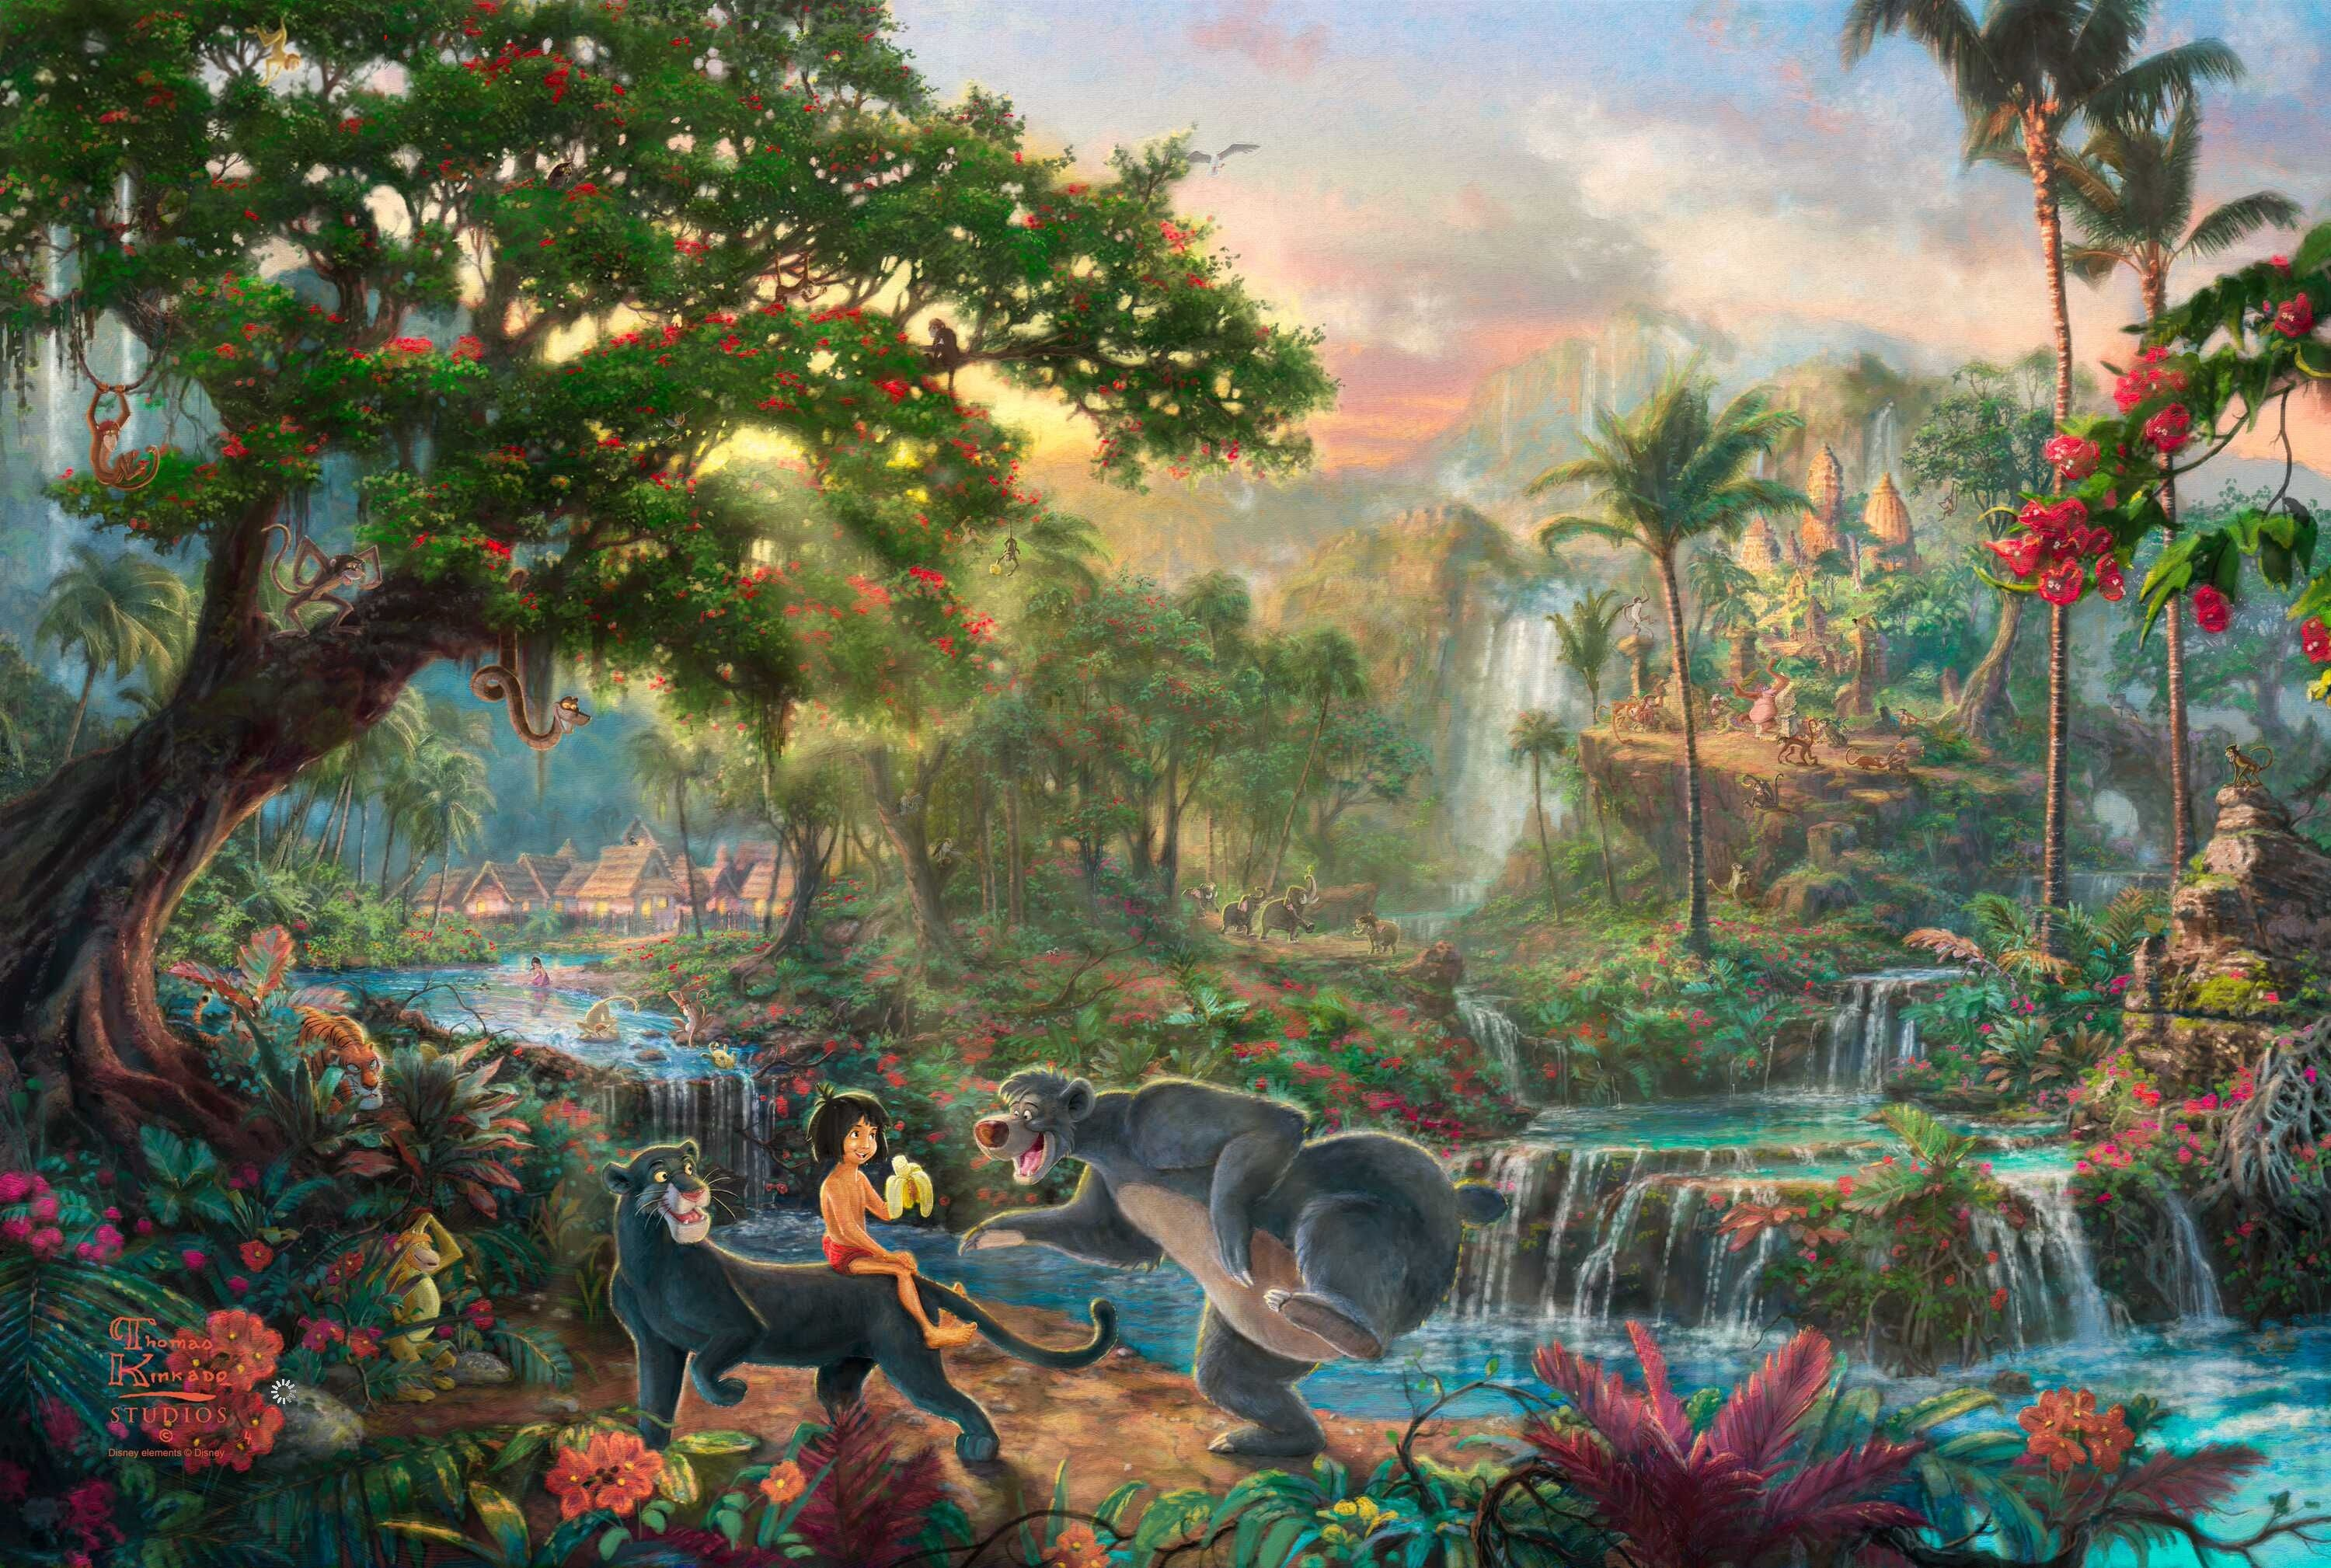 Disney Thomas Kinkade Wallpaper Hd Wallpapersafari